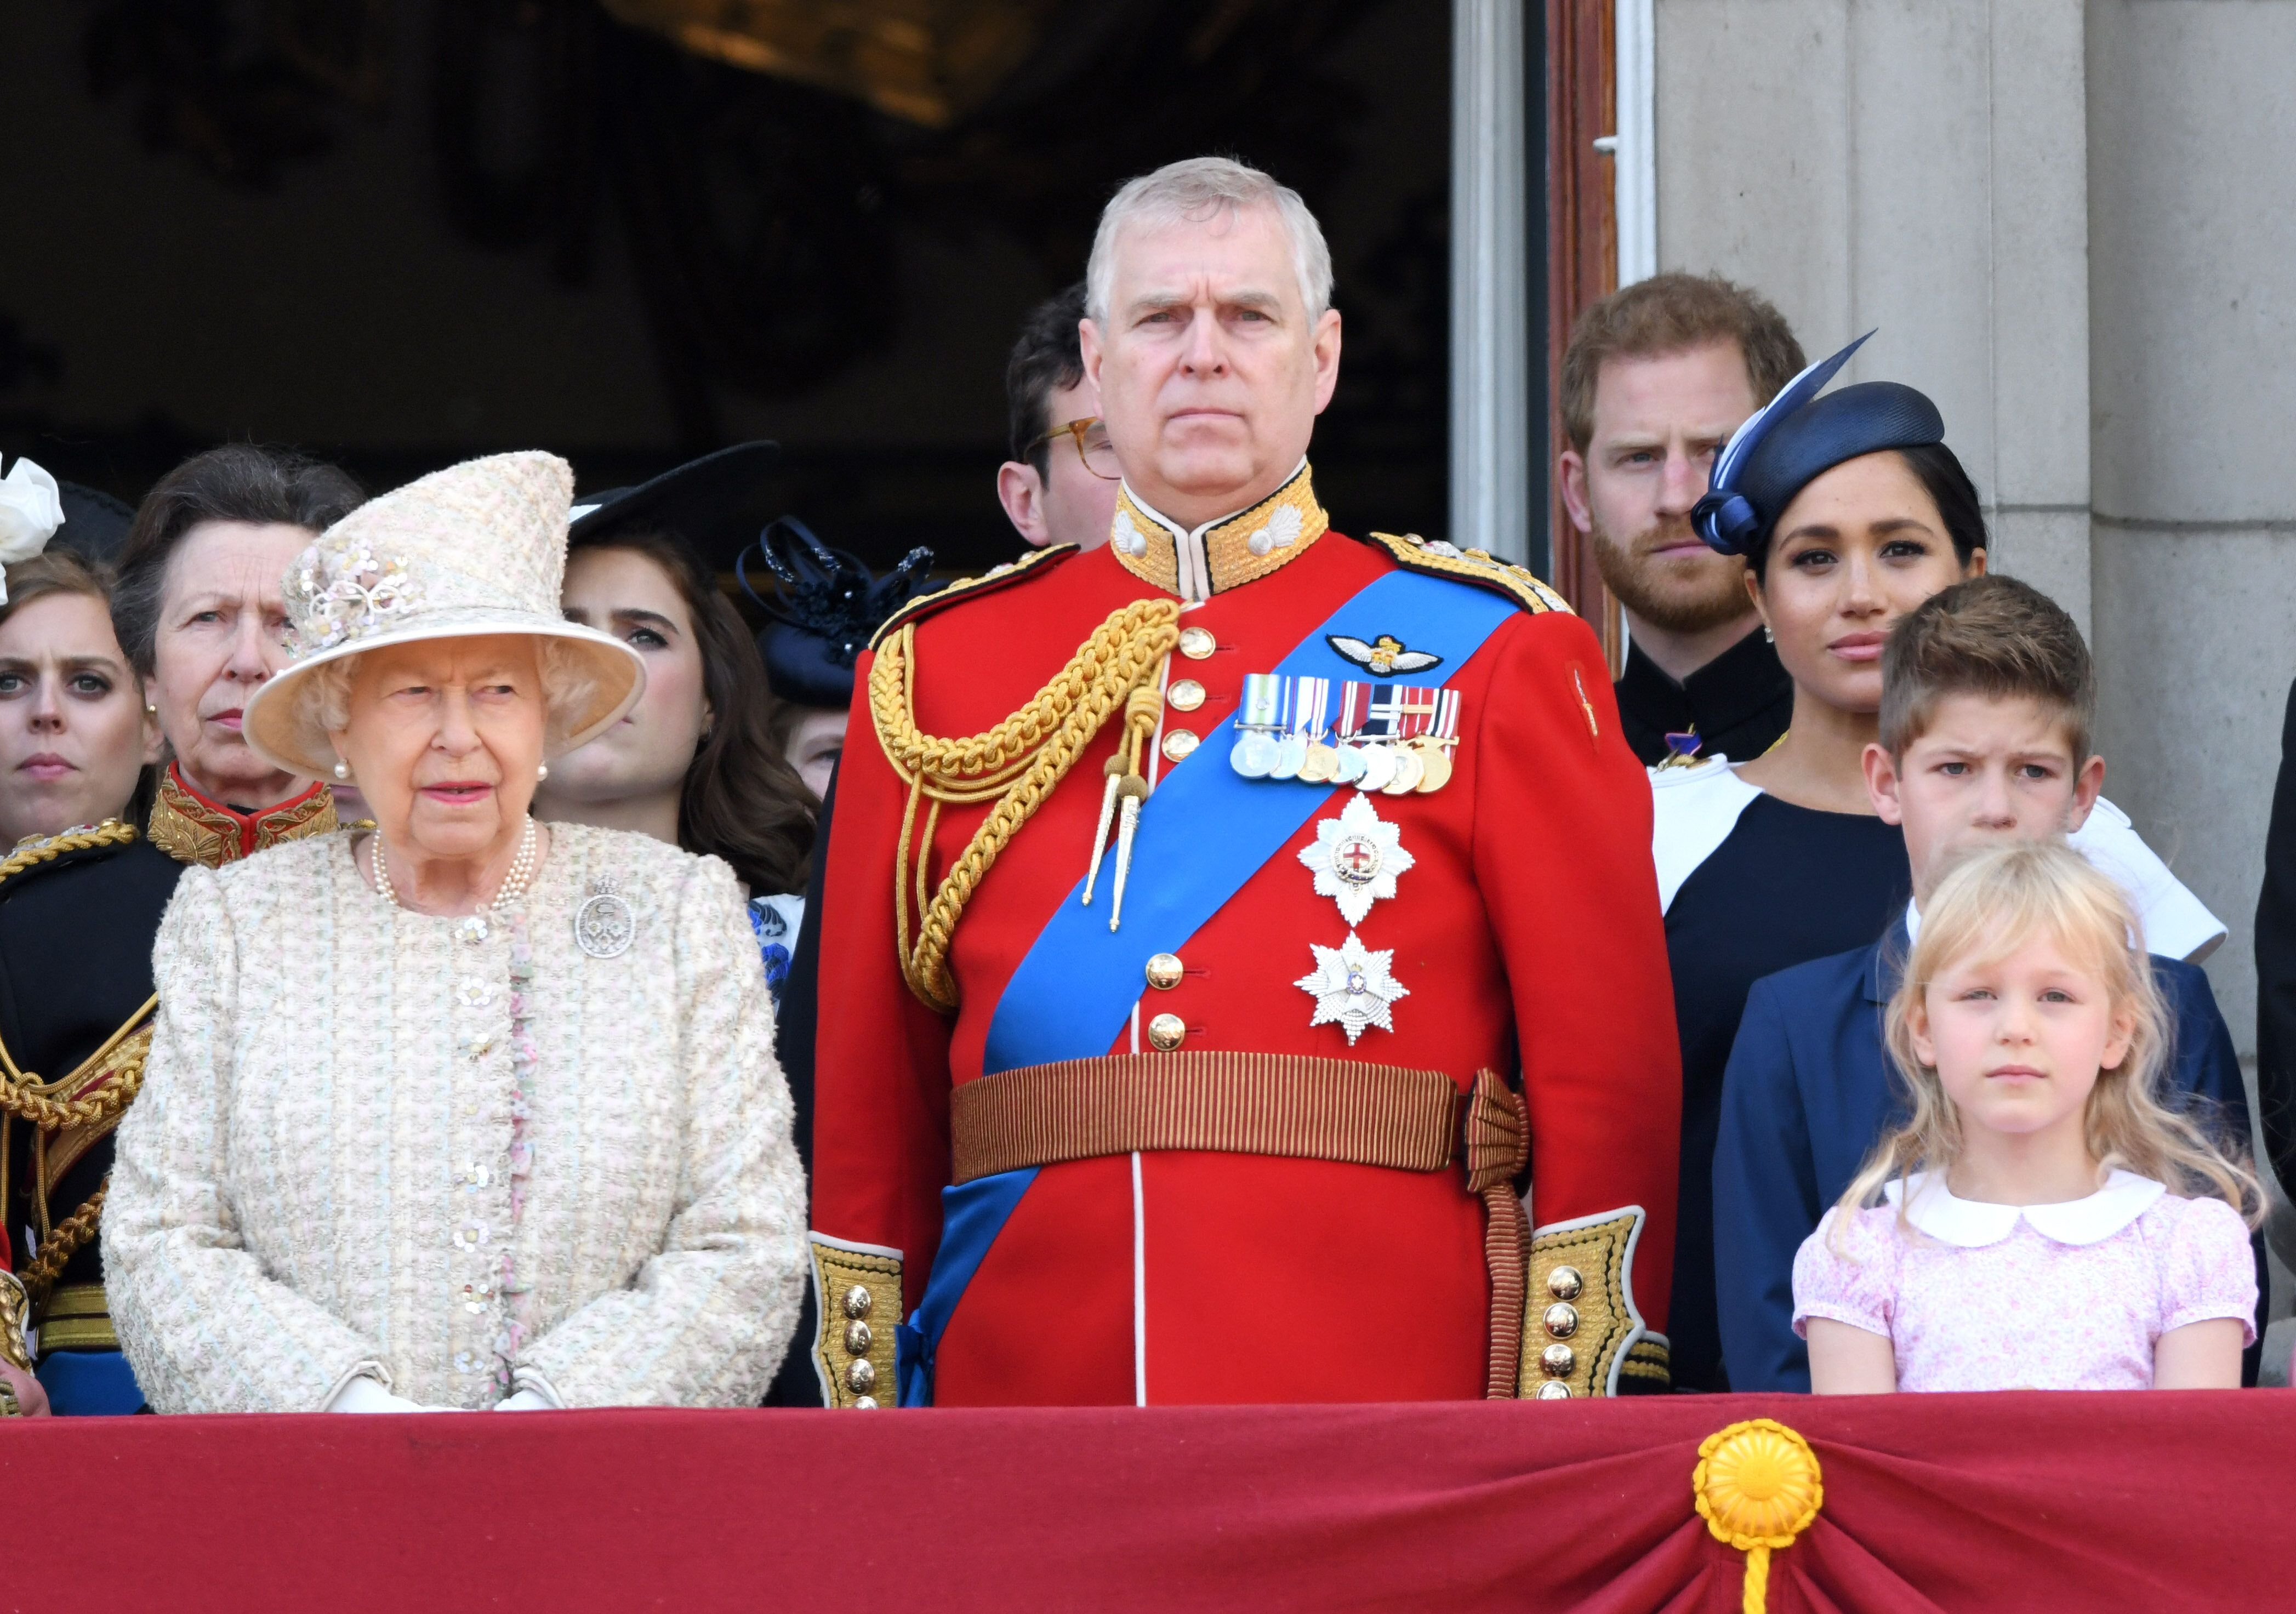 The Queen and Prince Andrew pictured on the balcony for Trooping the Colour 2019, while Prince Harry and Meghan Markle stand behind them